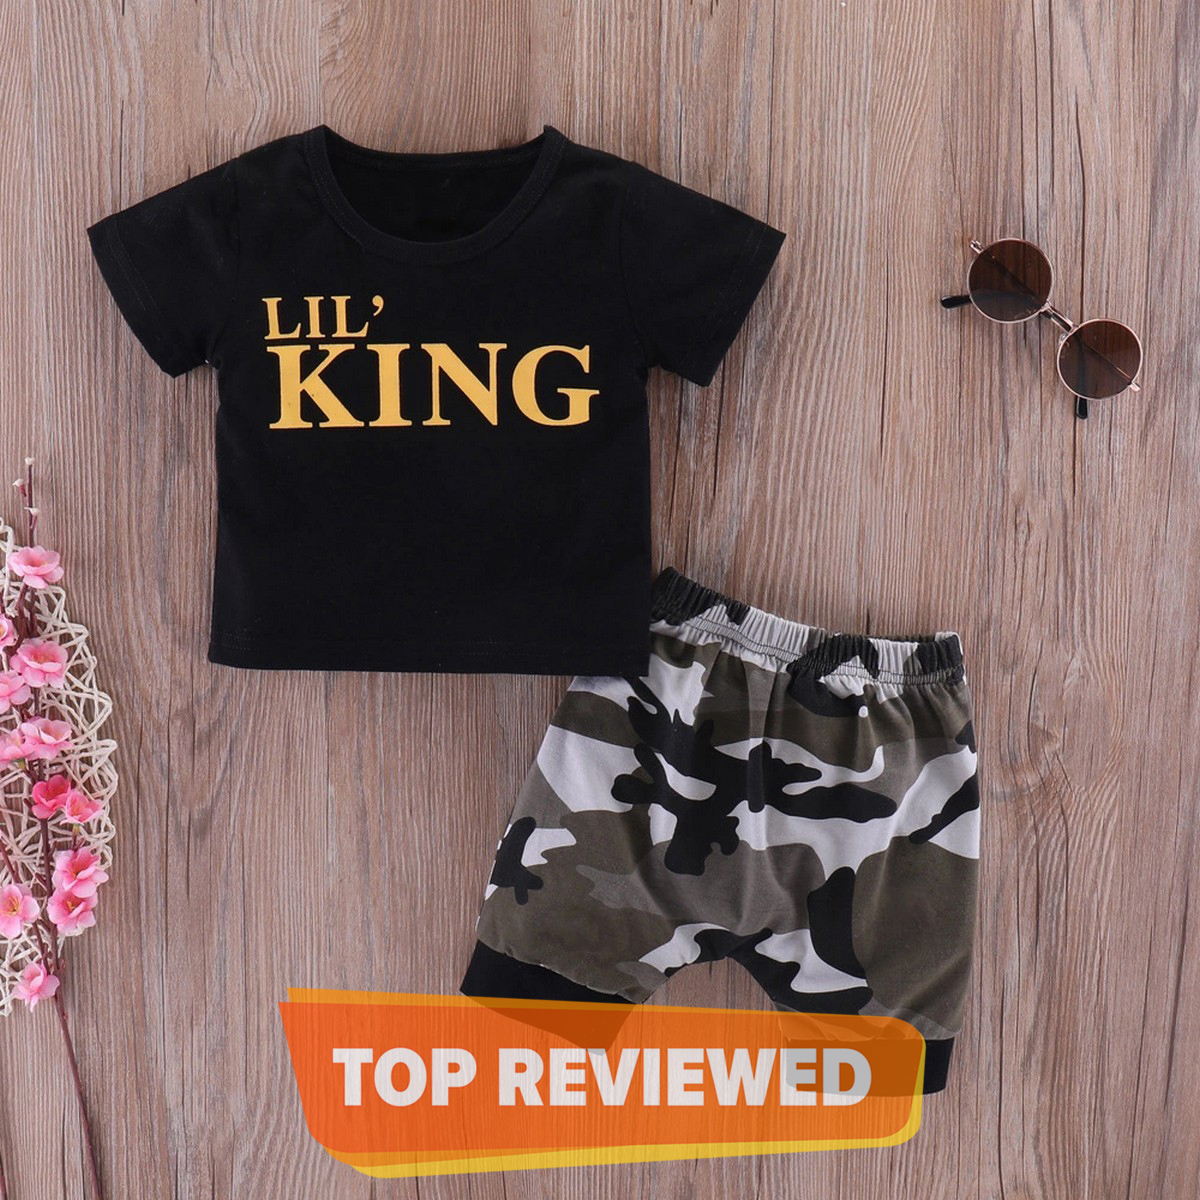 T Shirt And Shorts For Kids, Baby Boys Round Neck Short Sleev T Shirt ,  Cloths Sets Dresses Outfit, Commando and Camouflage Design Shorts